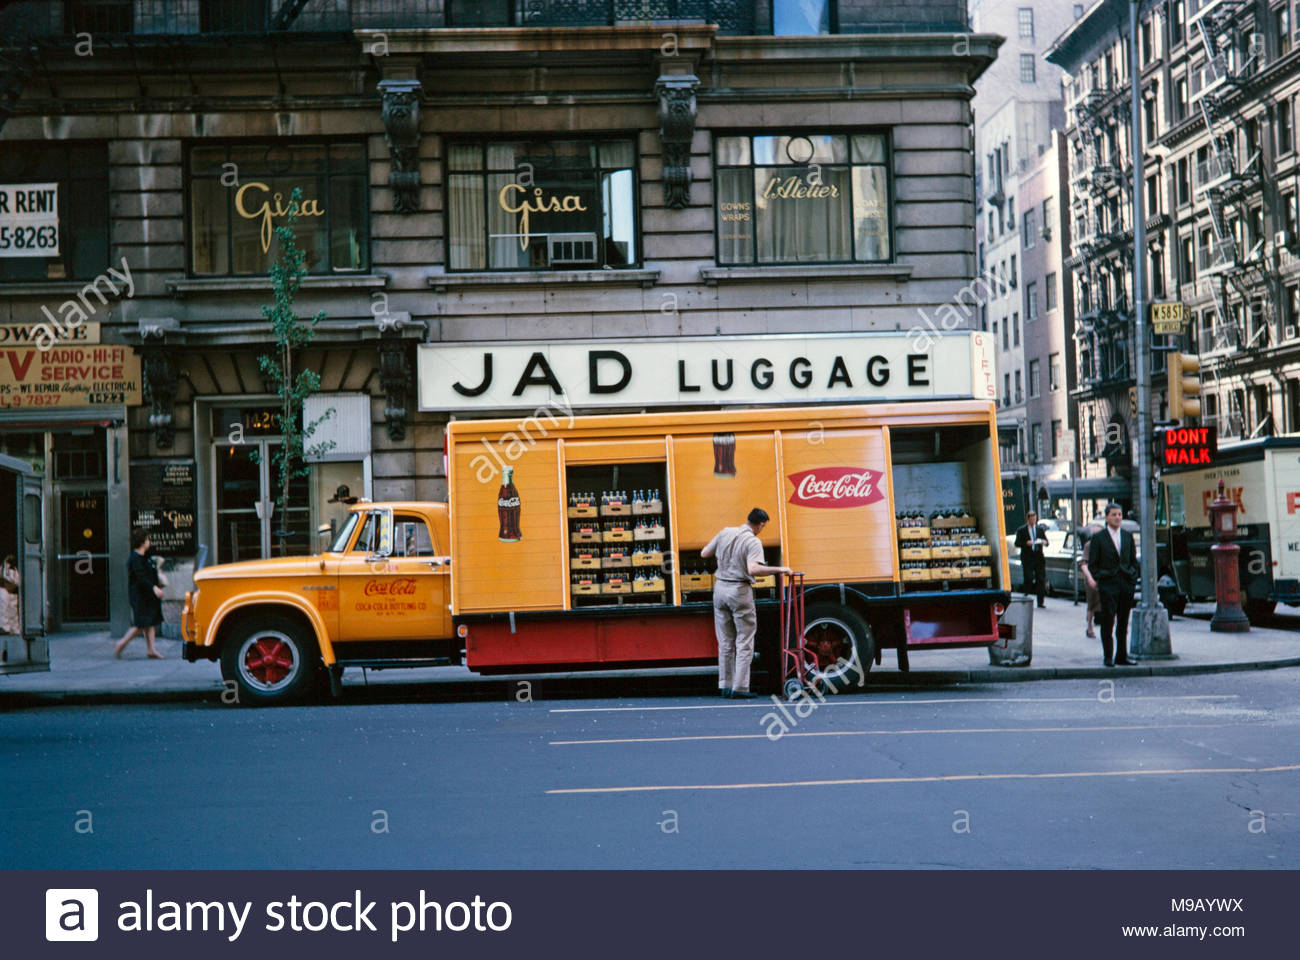 1960s Lorry Stock Photos Images Alamy 19601970 Mercedes Benz Trucks A Coca Cola Delivery Truck Being Unloaded Outside The Jad Luggage Store On